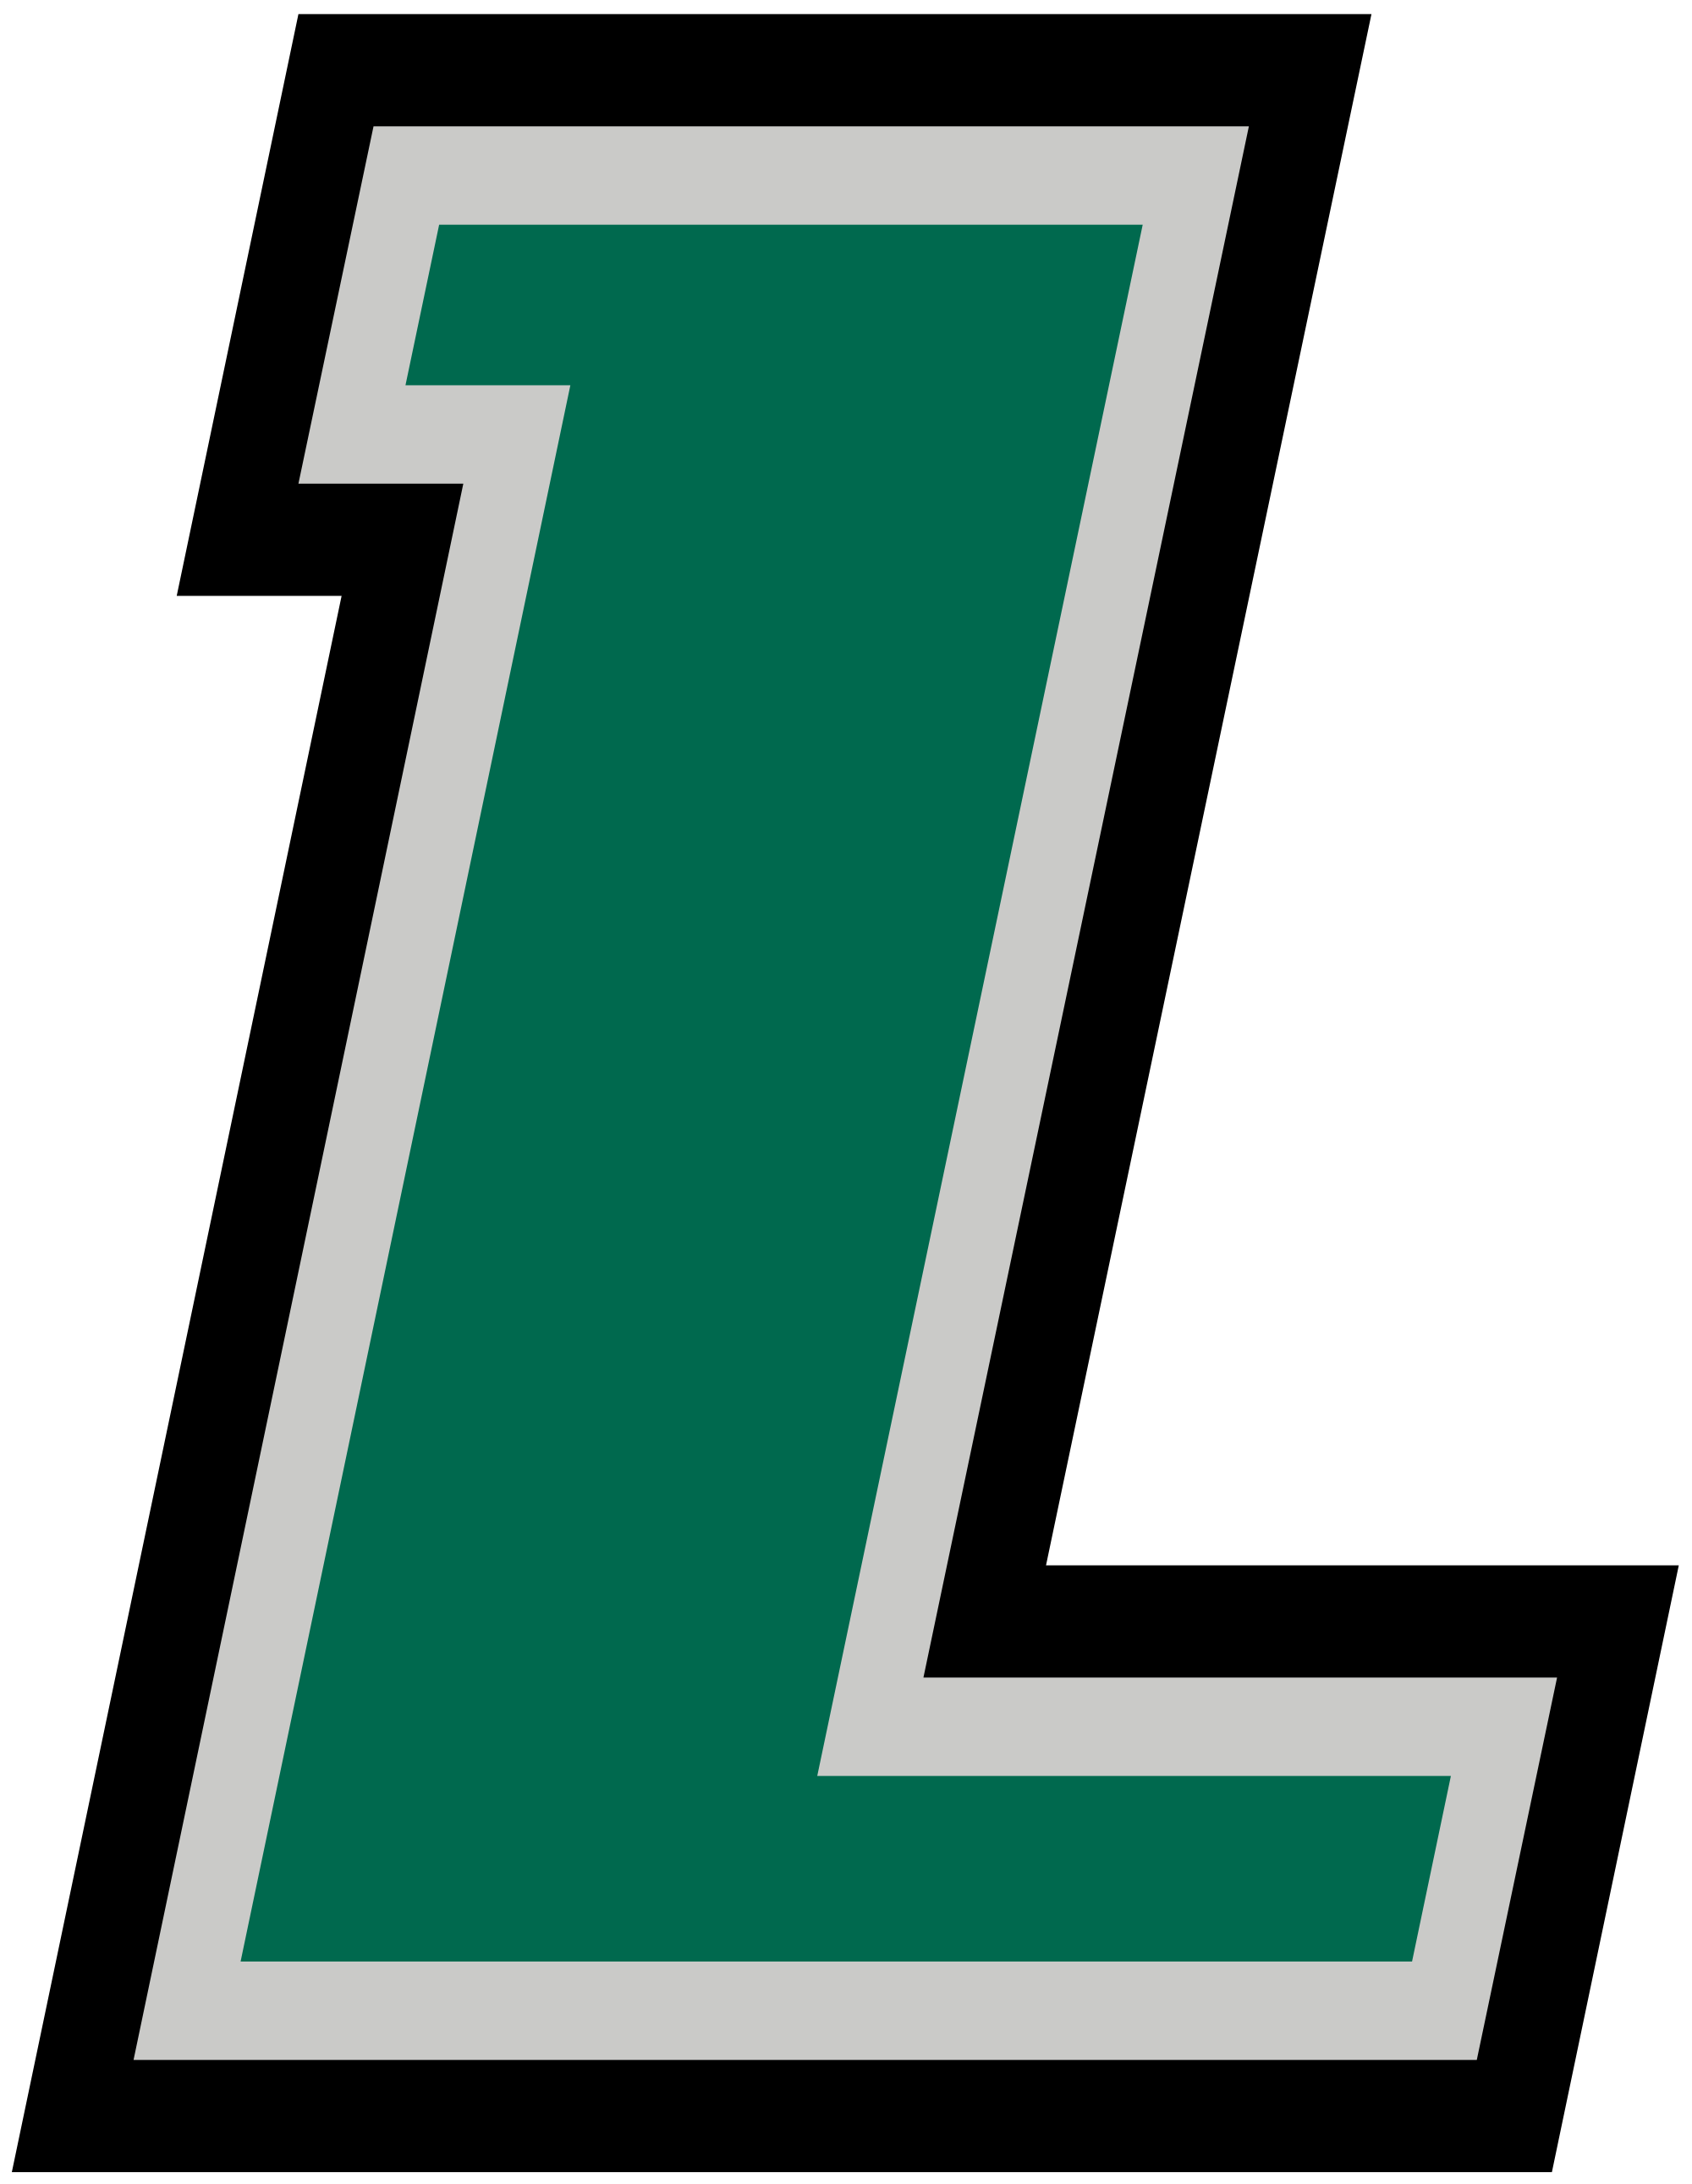 Greyhound vector football. File loyola greyhounds logo